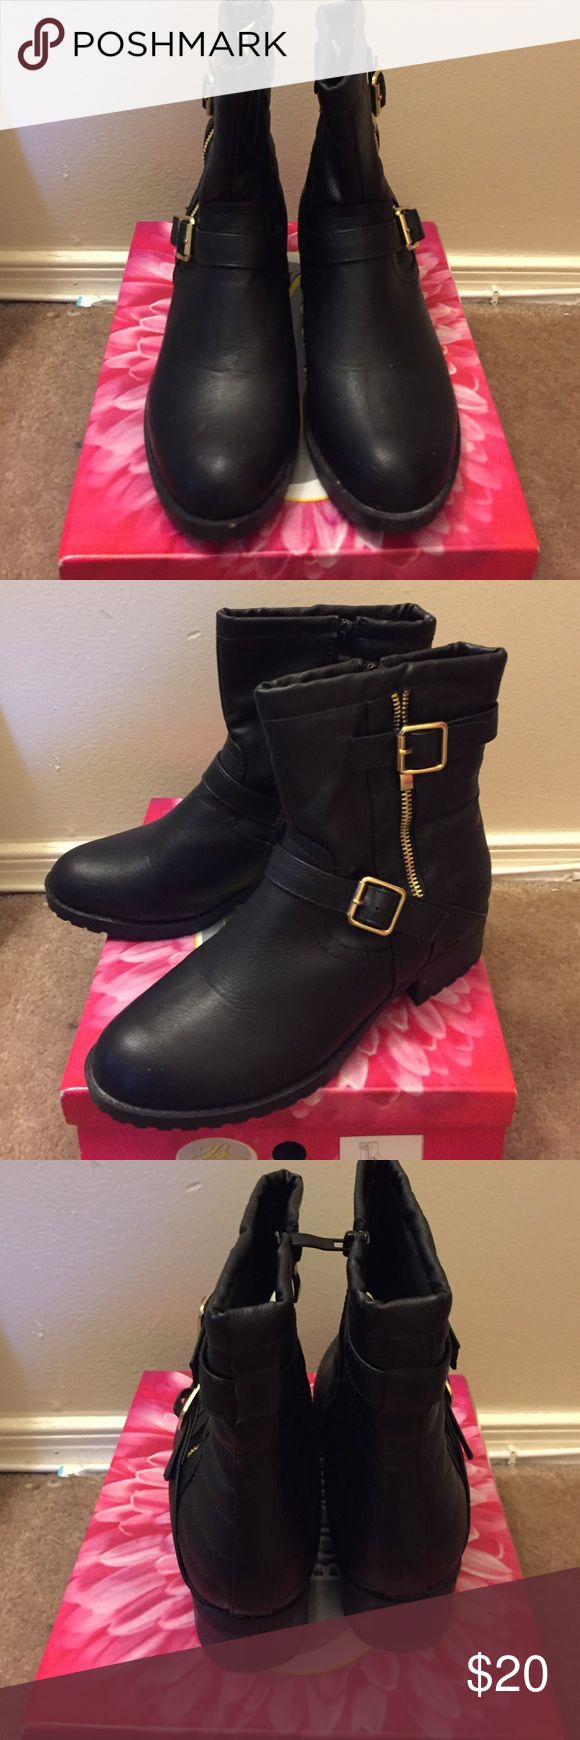 Bike boots Black biker boots with gold buckles and zipper in the side only worn once or twice Shoes Ankle Boots & Booties